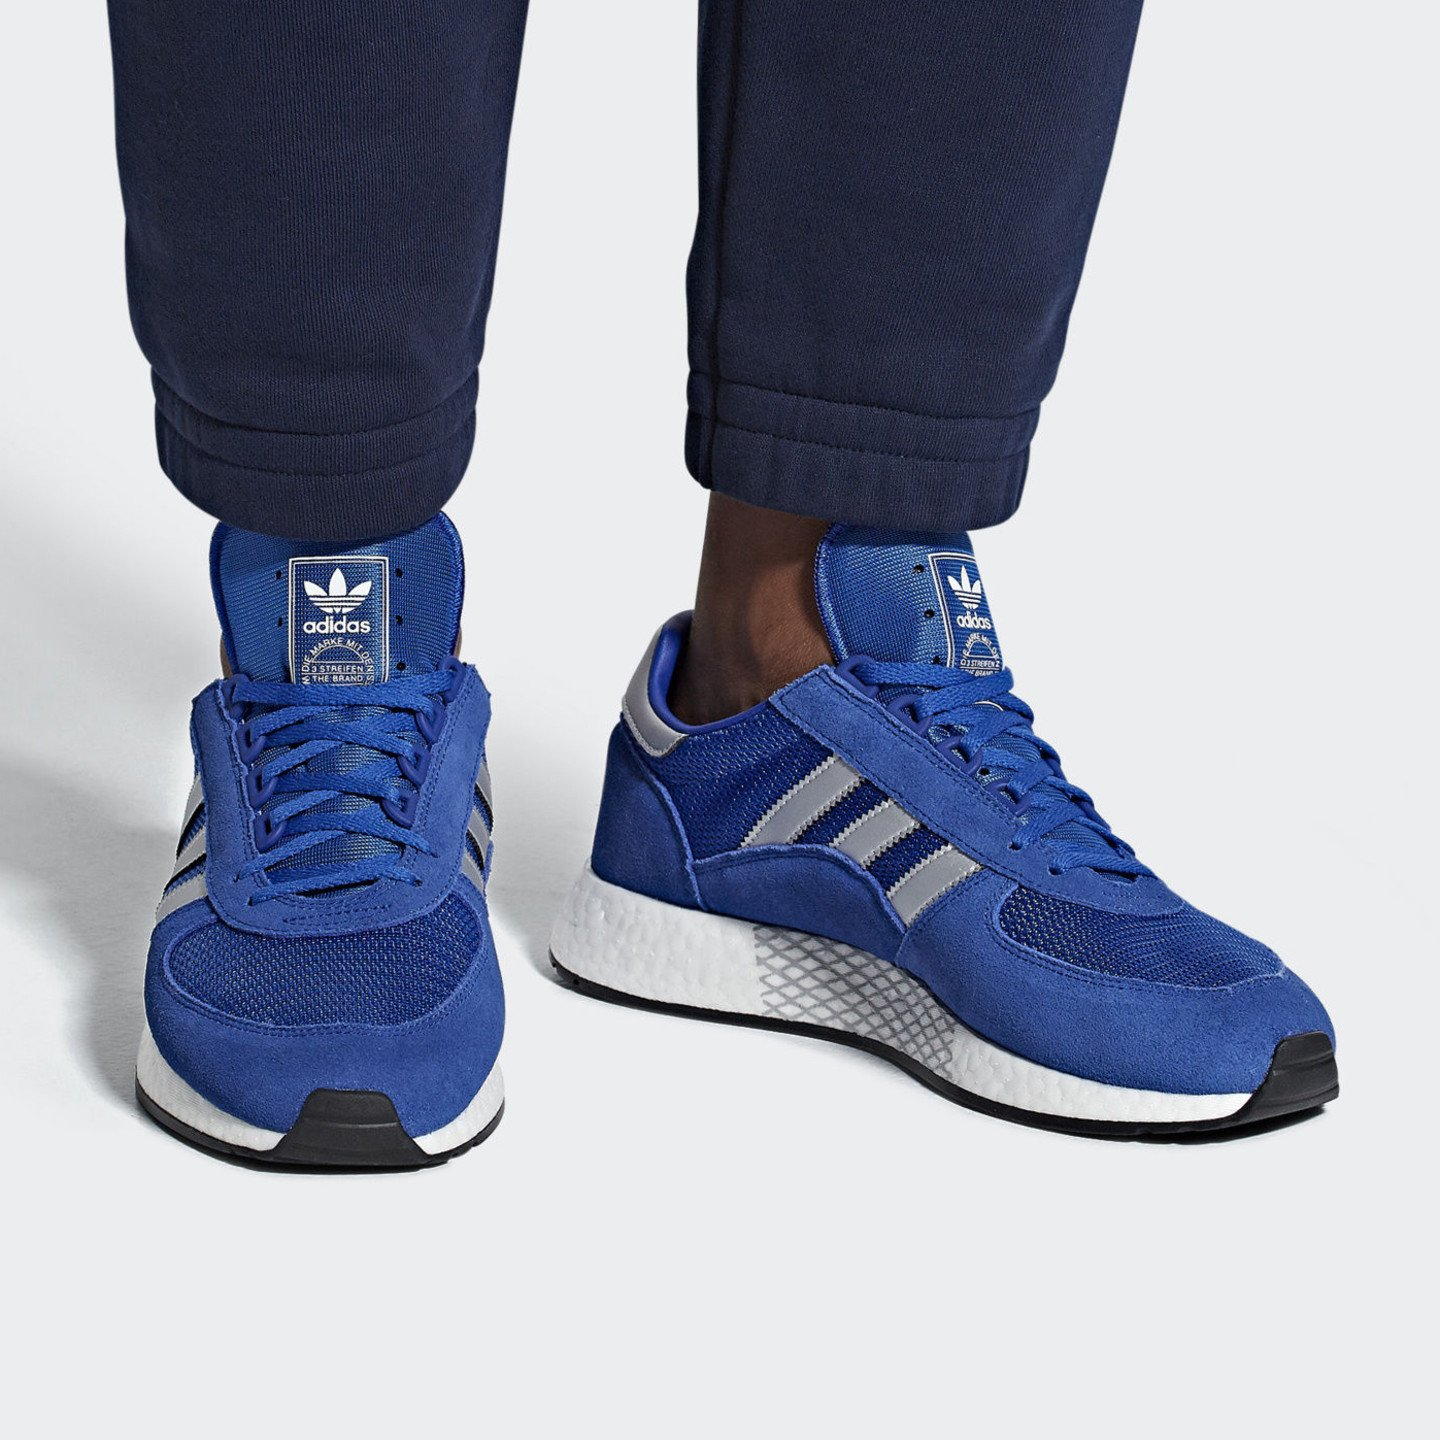 Adidas Marathon x 5923 'Never Made' Blue / Collegiate Red / Collegiate Royal G26782